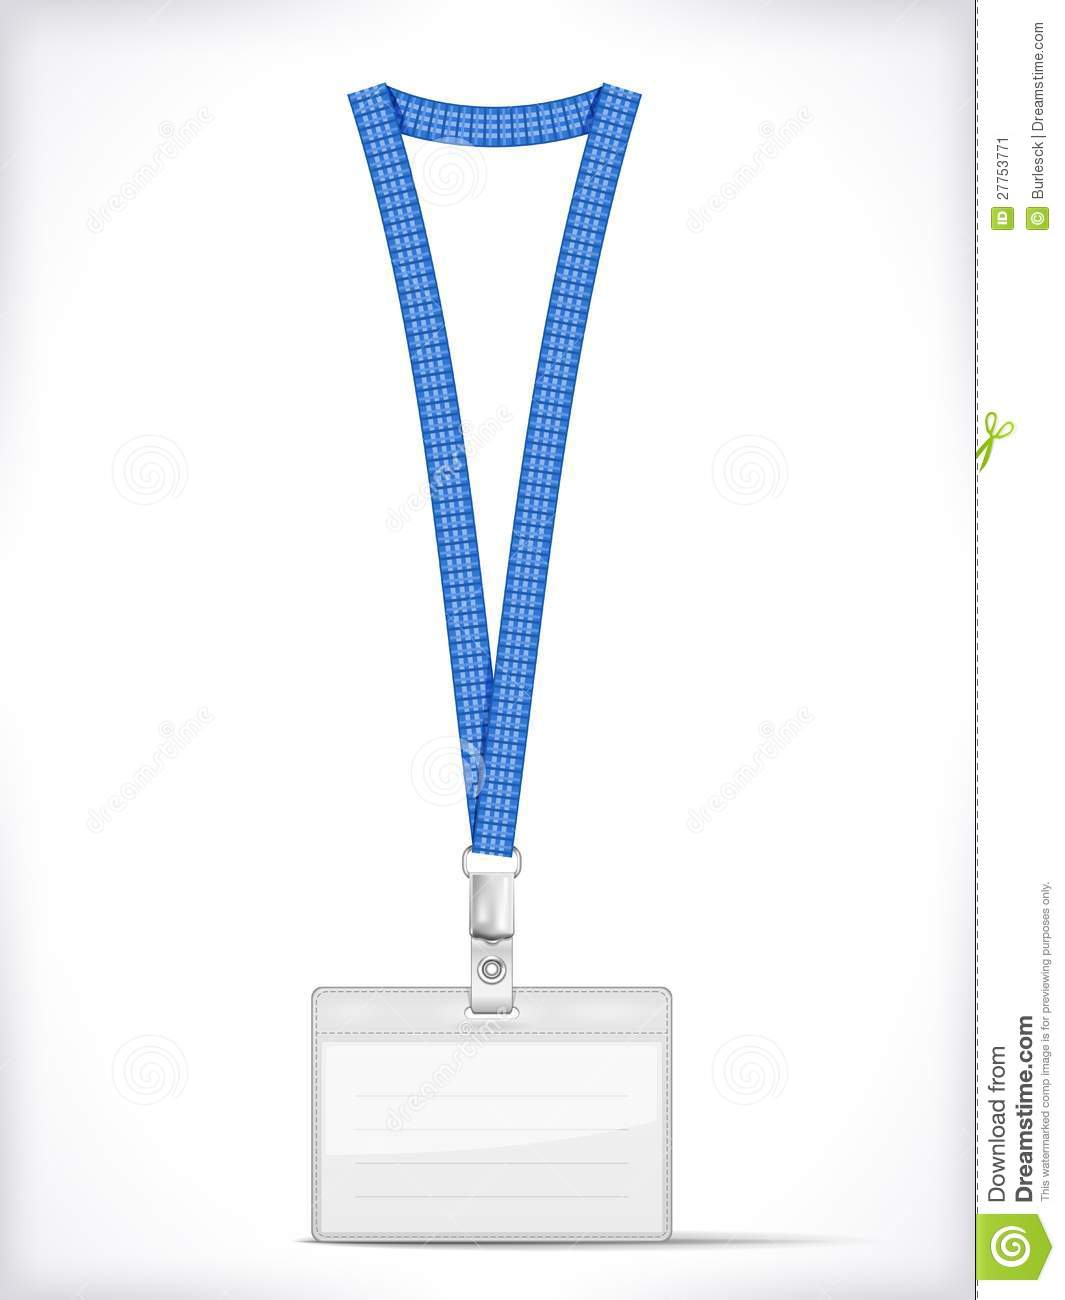 Lanyard with Tag Badge Holder isolated on white. Vector Illustration.